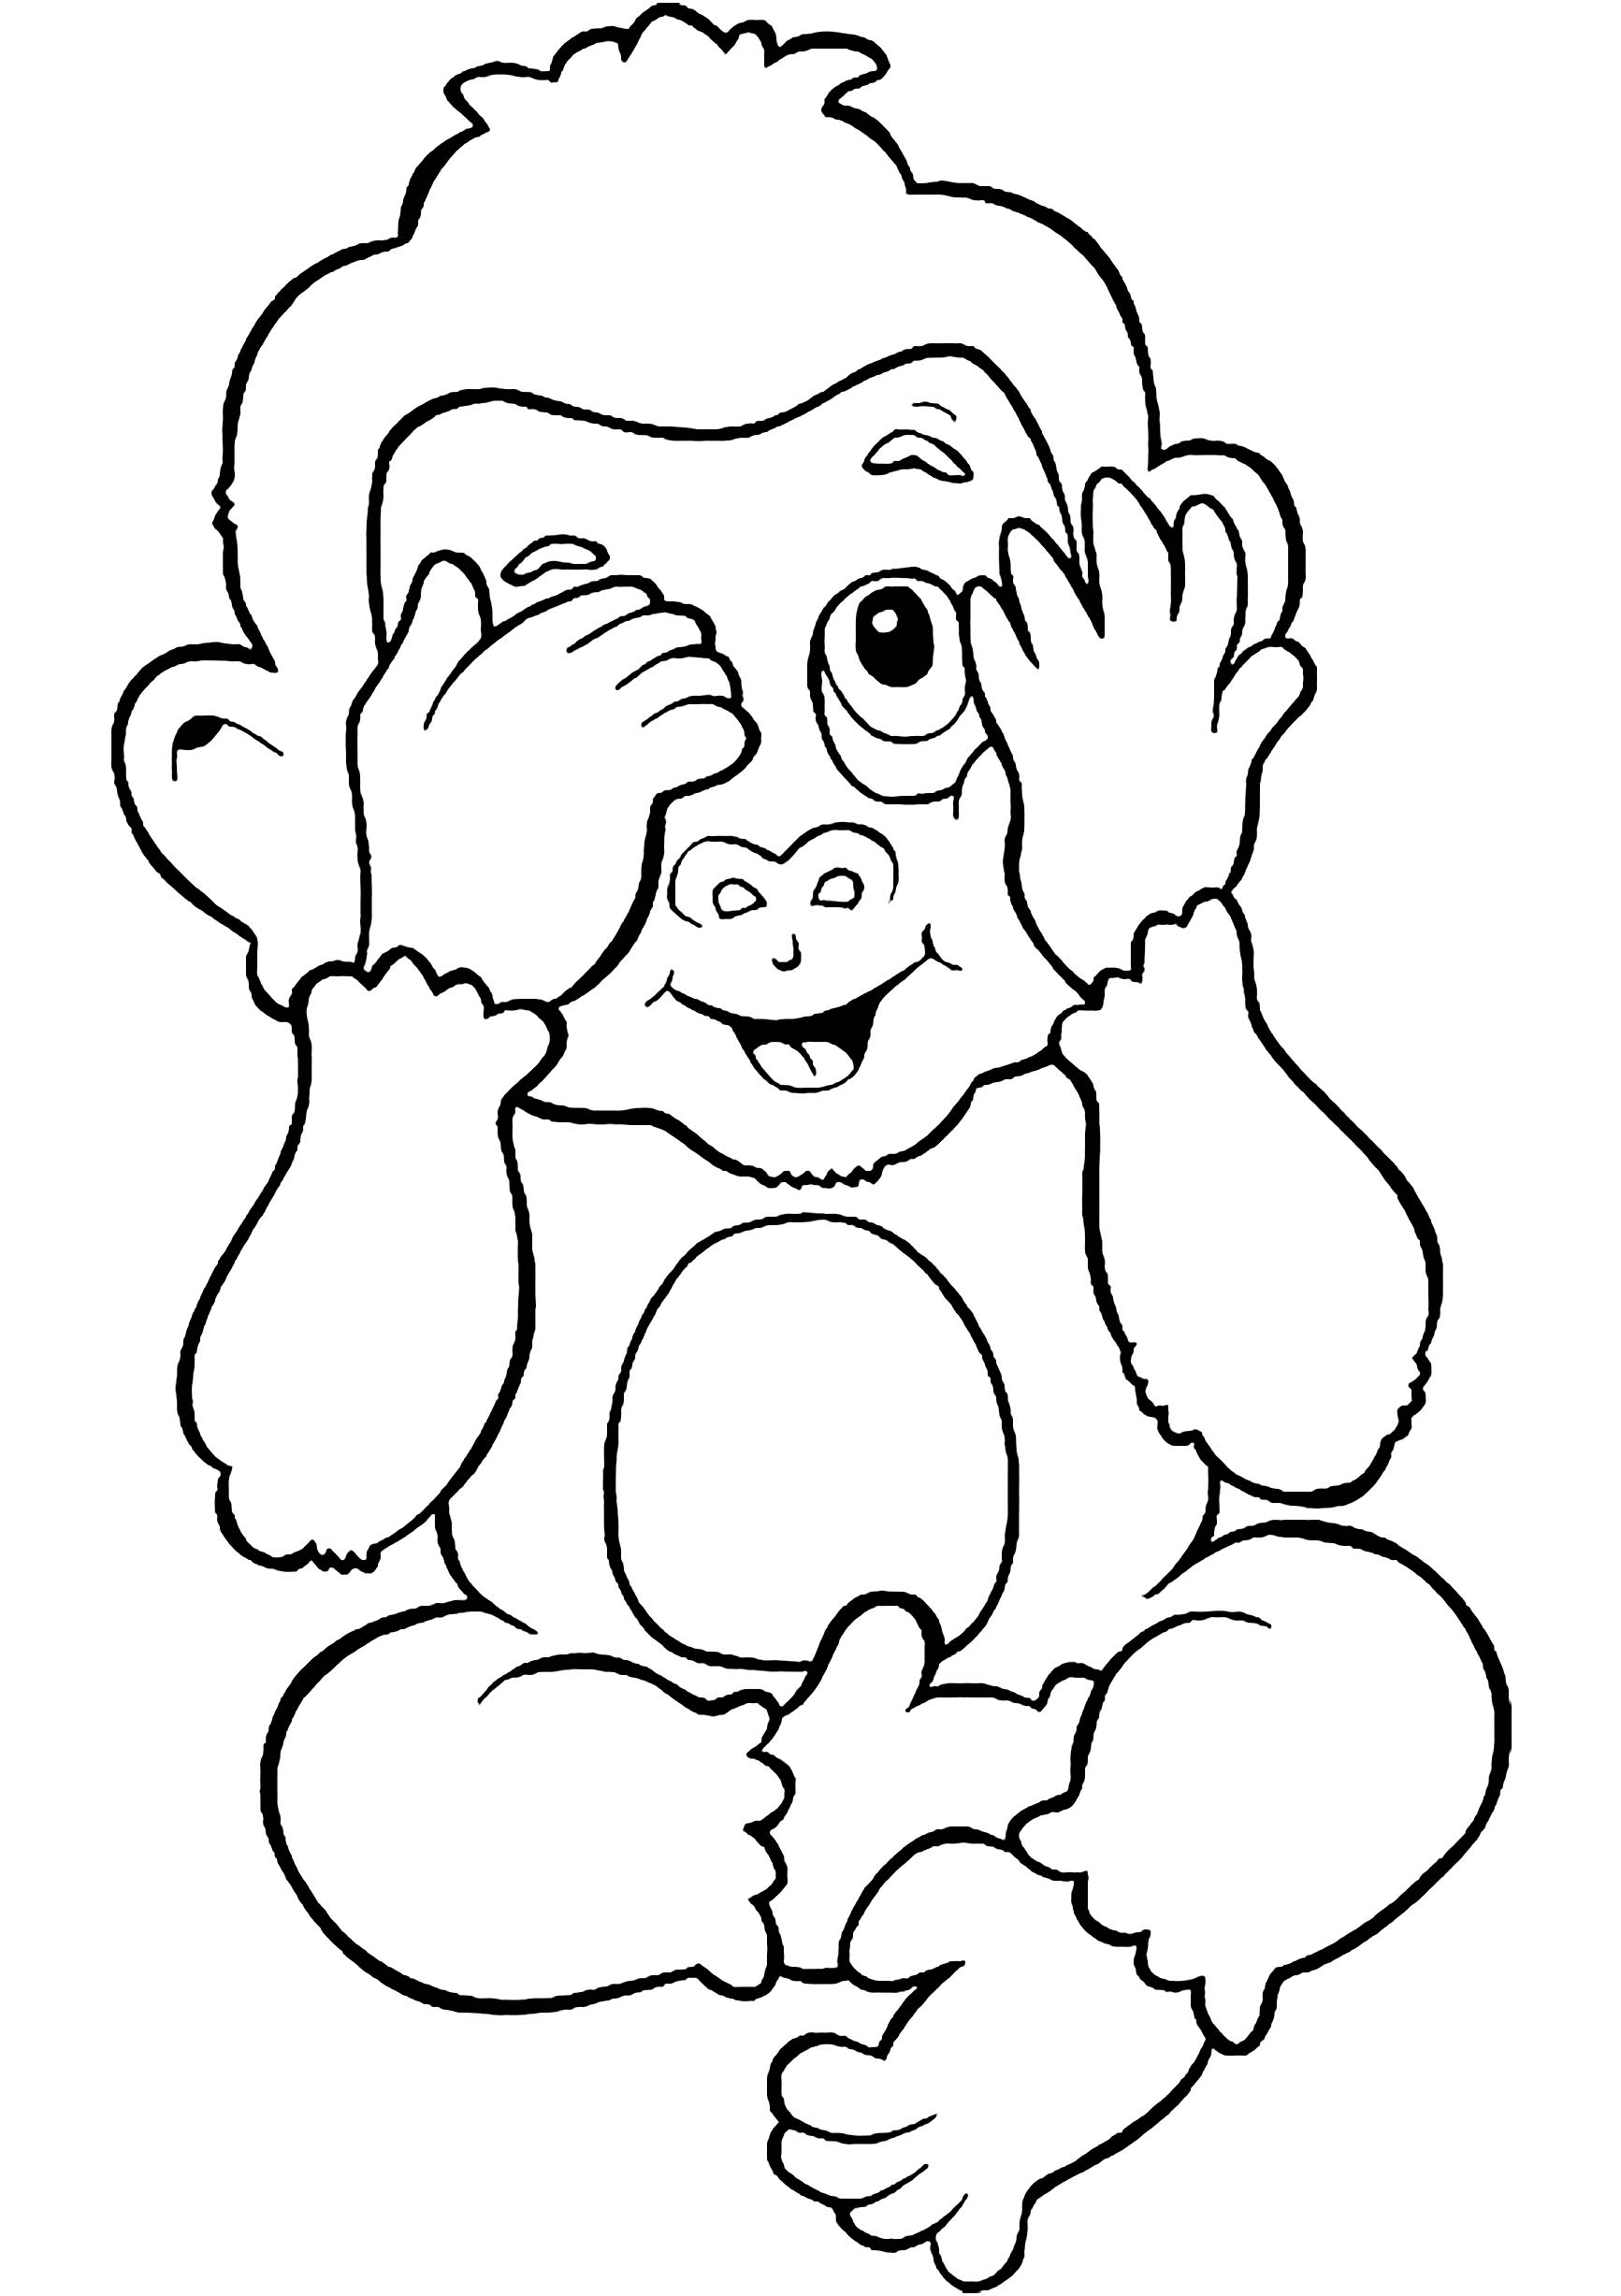 coloring monkey printable cute coloring pages getcoloringpagescom printable coloring monkey